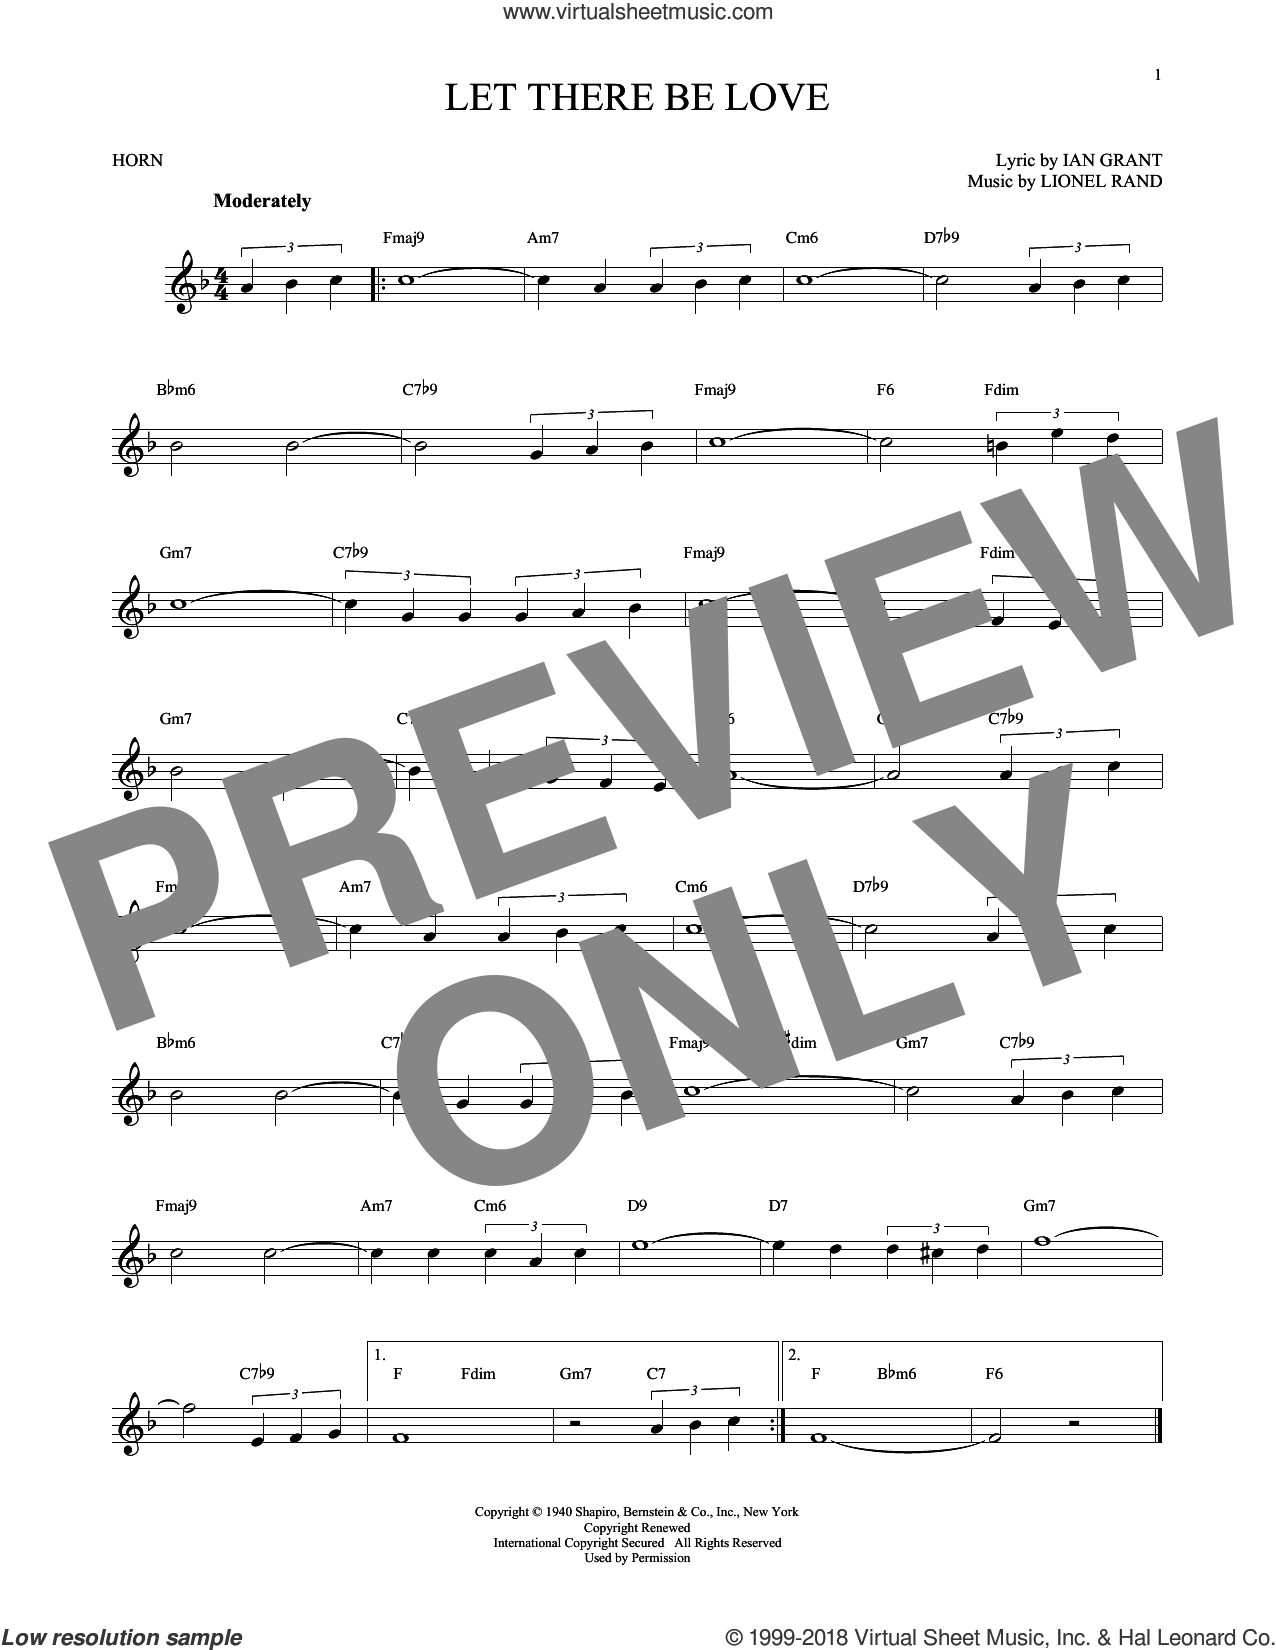 Let There Be Love sheet music for horn solo by Ian Grant. Score Image Preview.